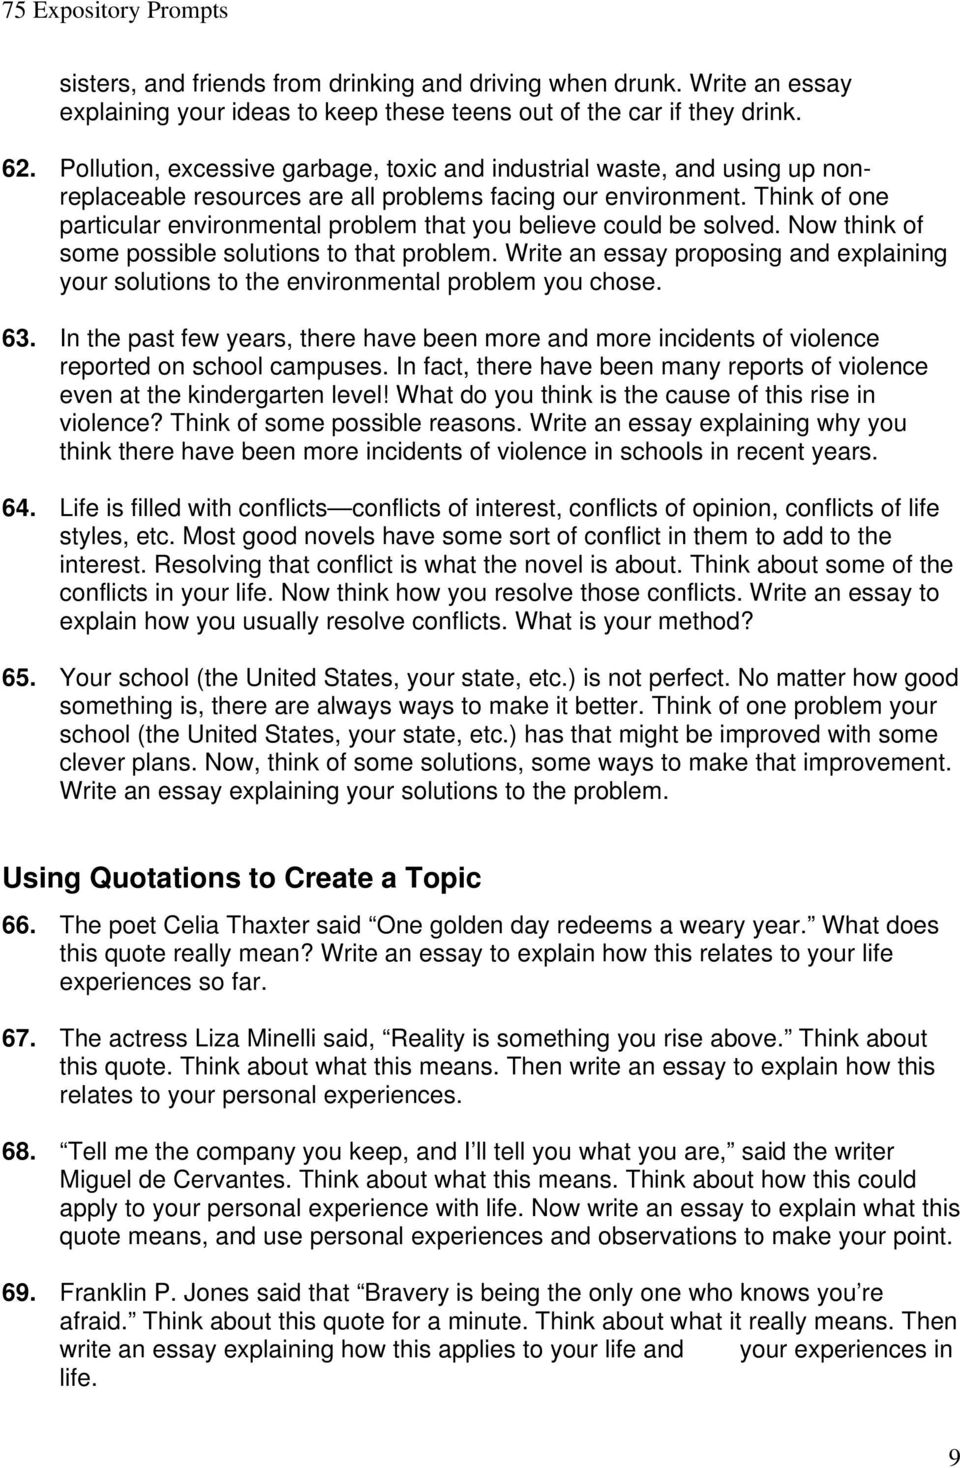 75 expository prompts pdf think of one particular environmental problem that you believe could be solved now think of